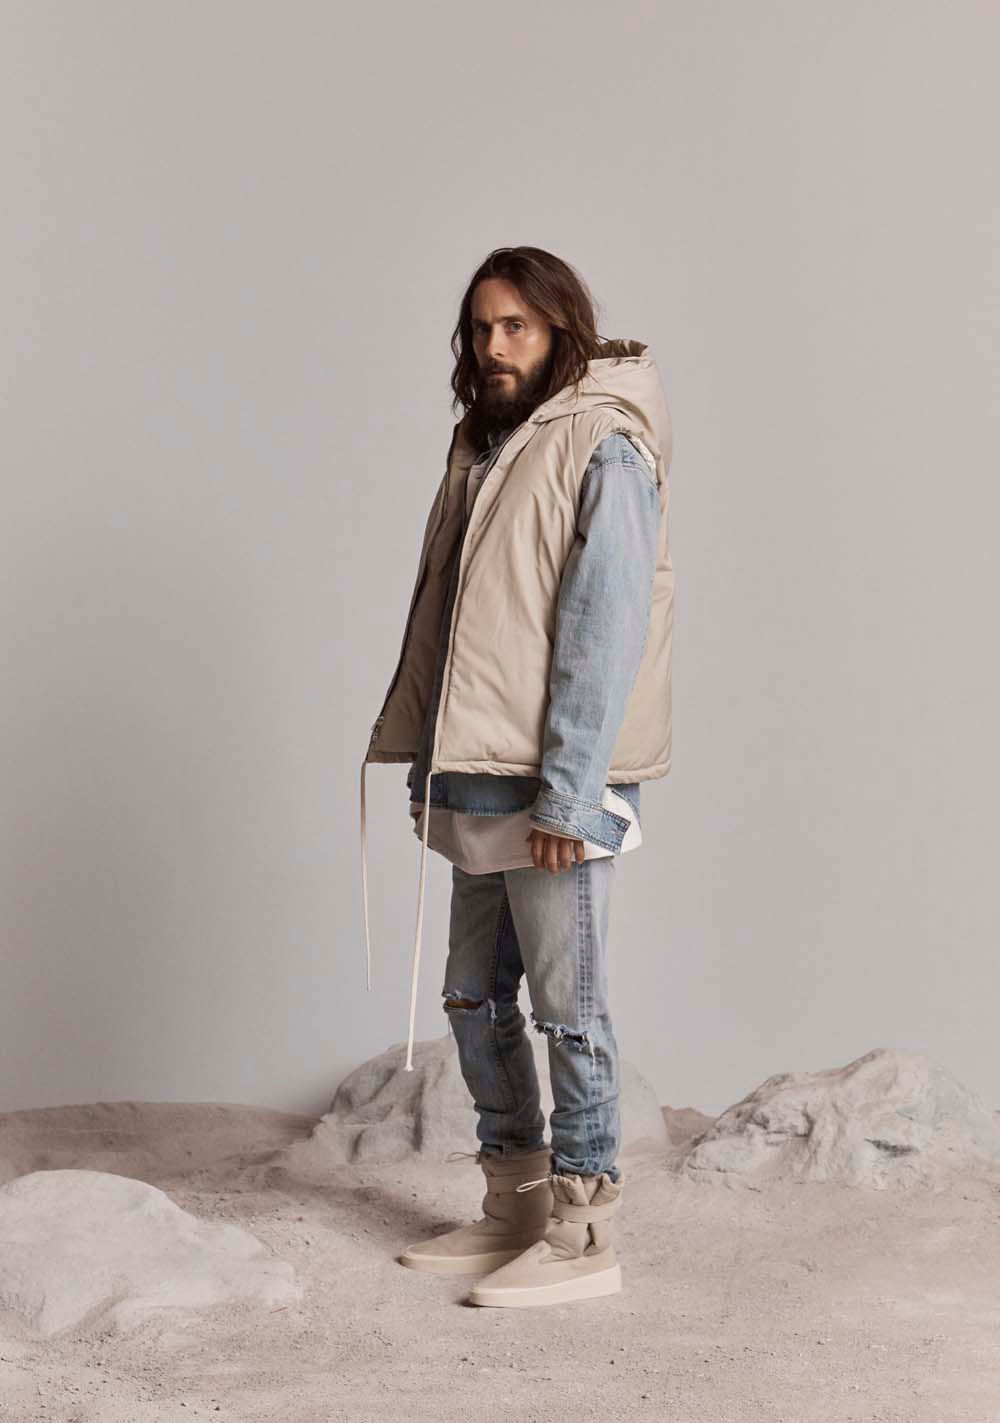 https_%2F%2Fhypebeast.com%2Fimage%2F2018%2F09%2Ffear-of-god-6-sixth-collection-jared-leto-nike-07.jpg